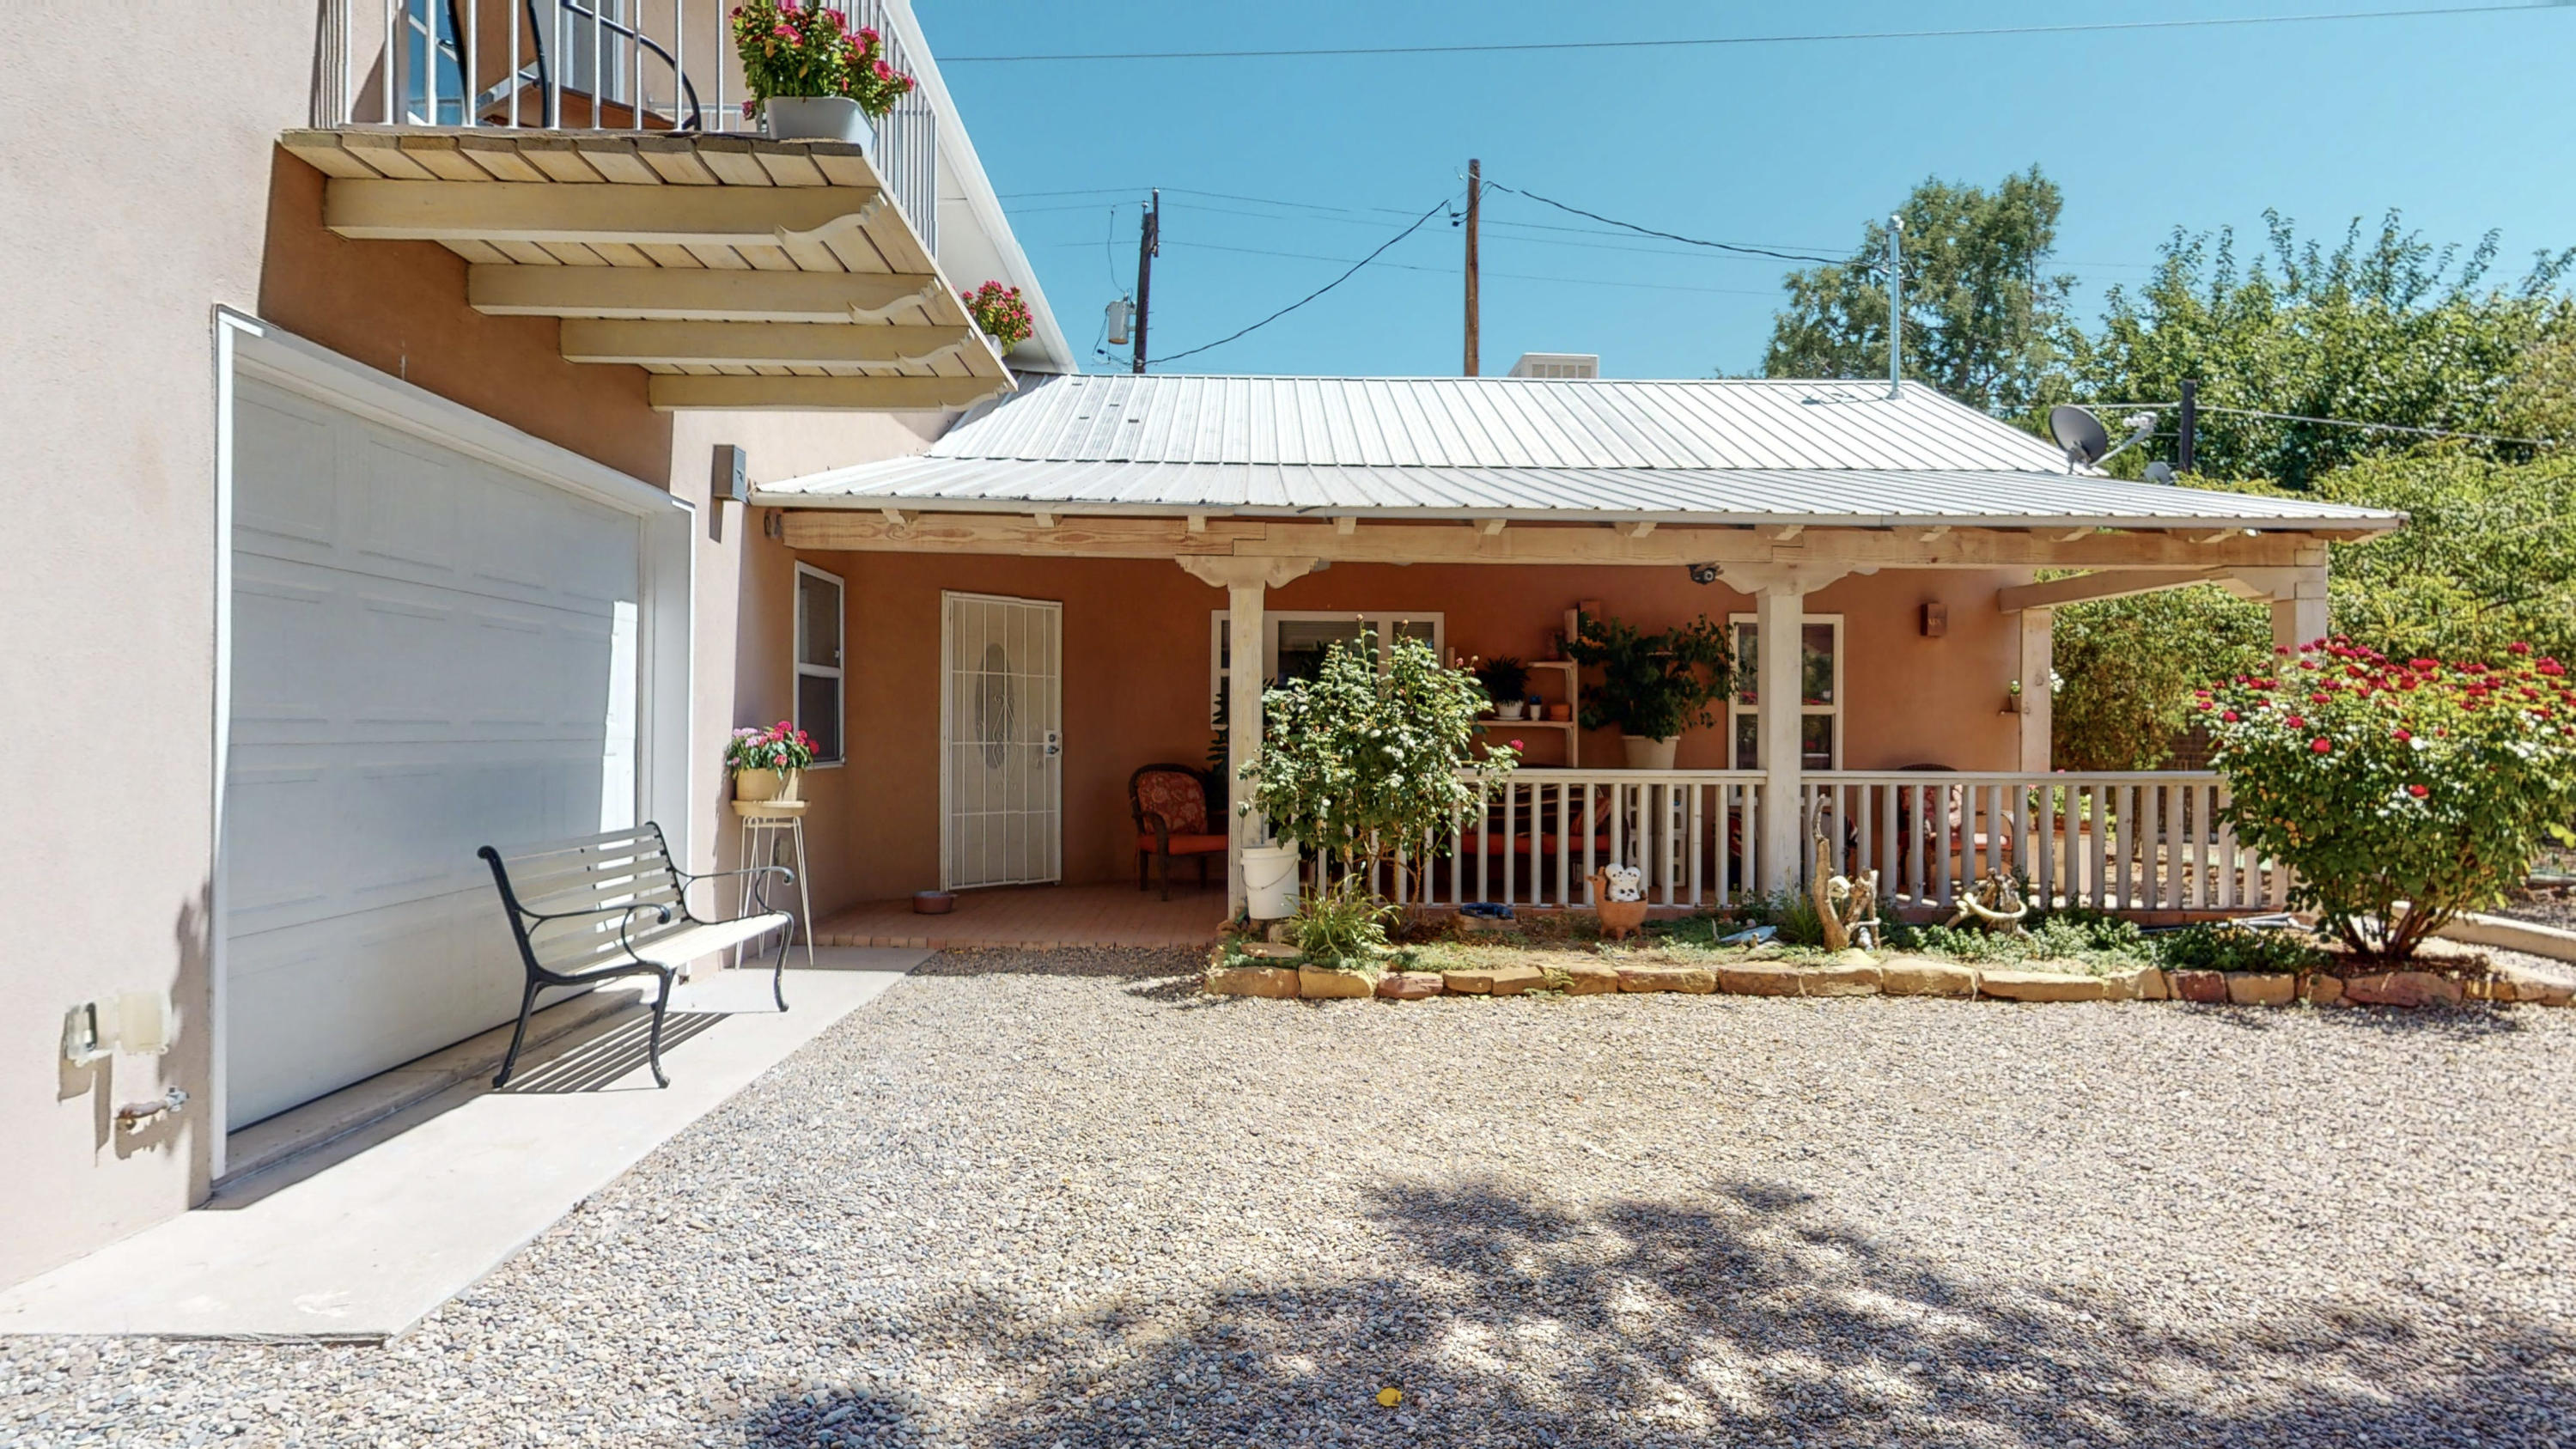 A treasure in the sought after downtown/OLD TOWN area. Newer Northern New Mexico- Queen Anne house filled with lots of charm and  natural light.This 16 year home has a wonderful open floorplan, kitchen with large pantry & appliances conveying with the property. Dining & Living Rooms are light filled with neutral tile floors. Separate Owner Suite-.Upper floor has additional bedroom/office, large bathroom, jetted tub,walk in closet, a lovely balcony. The garage, included in the heated footage is great for your car or hobbies. Sauna on 1st floor .Built for quiet privacy. Historic Old Town is a Pedestrian district - with so many things to do. Museums, Shopping, Bicycling and Downtown is a few blocks away- as well.  Radiant Heat and Solar Too! What a Property!